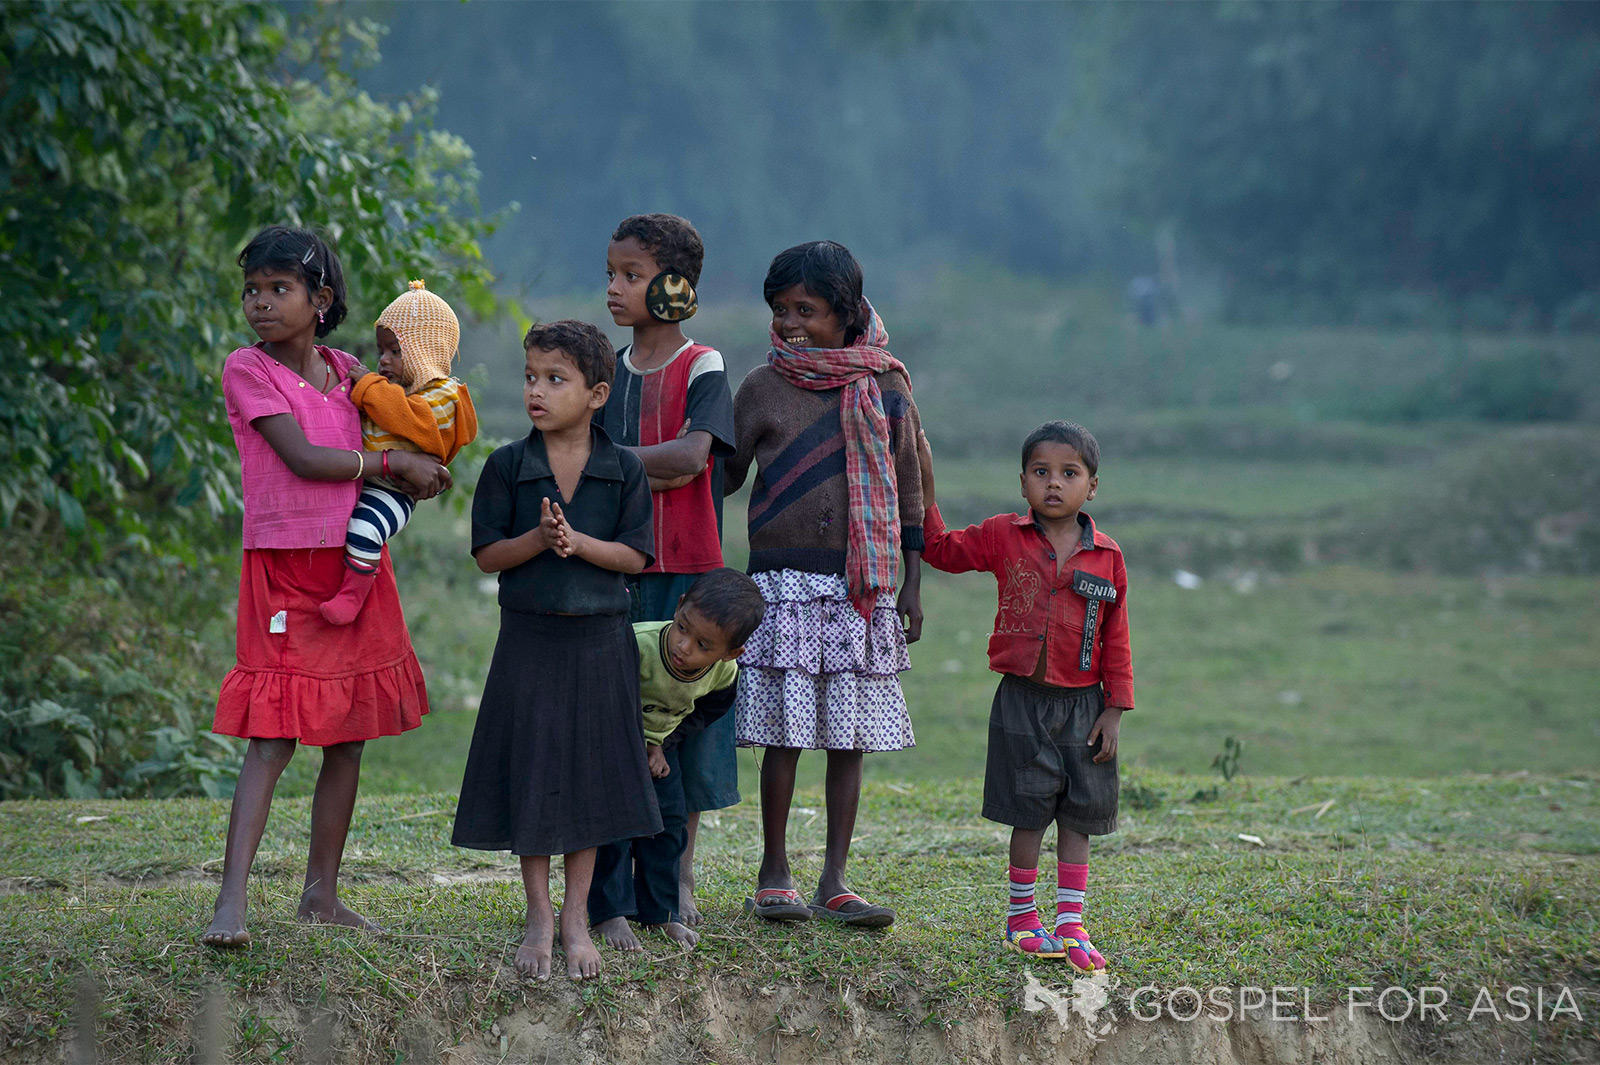 My dream is to one day rescue 500,000 children - KP Yohannan - Gospel for Asia